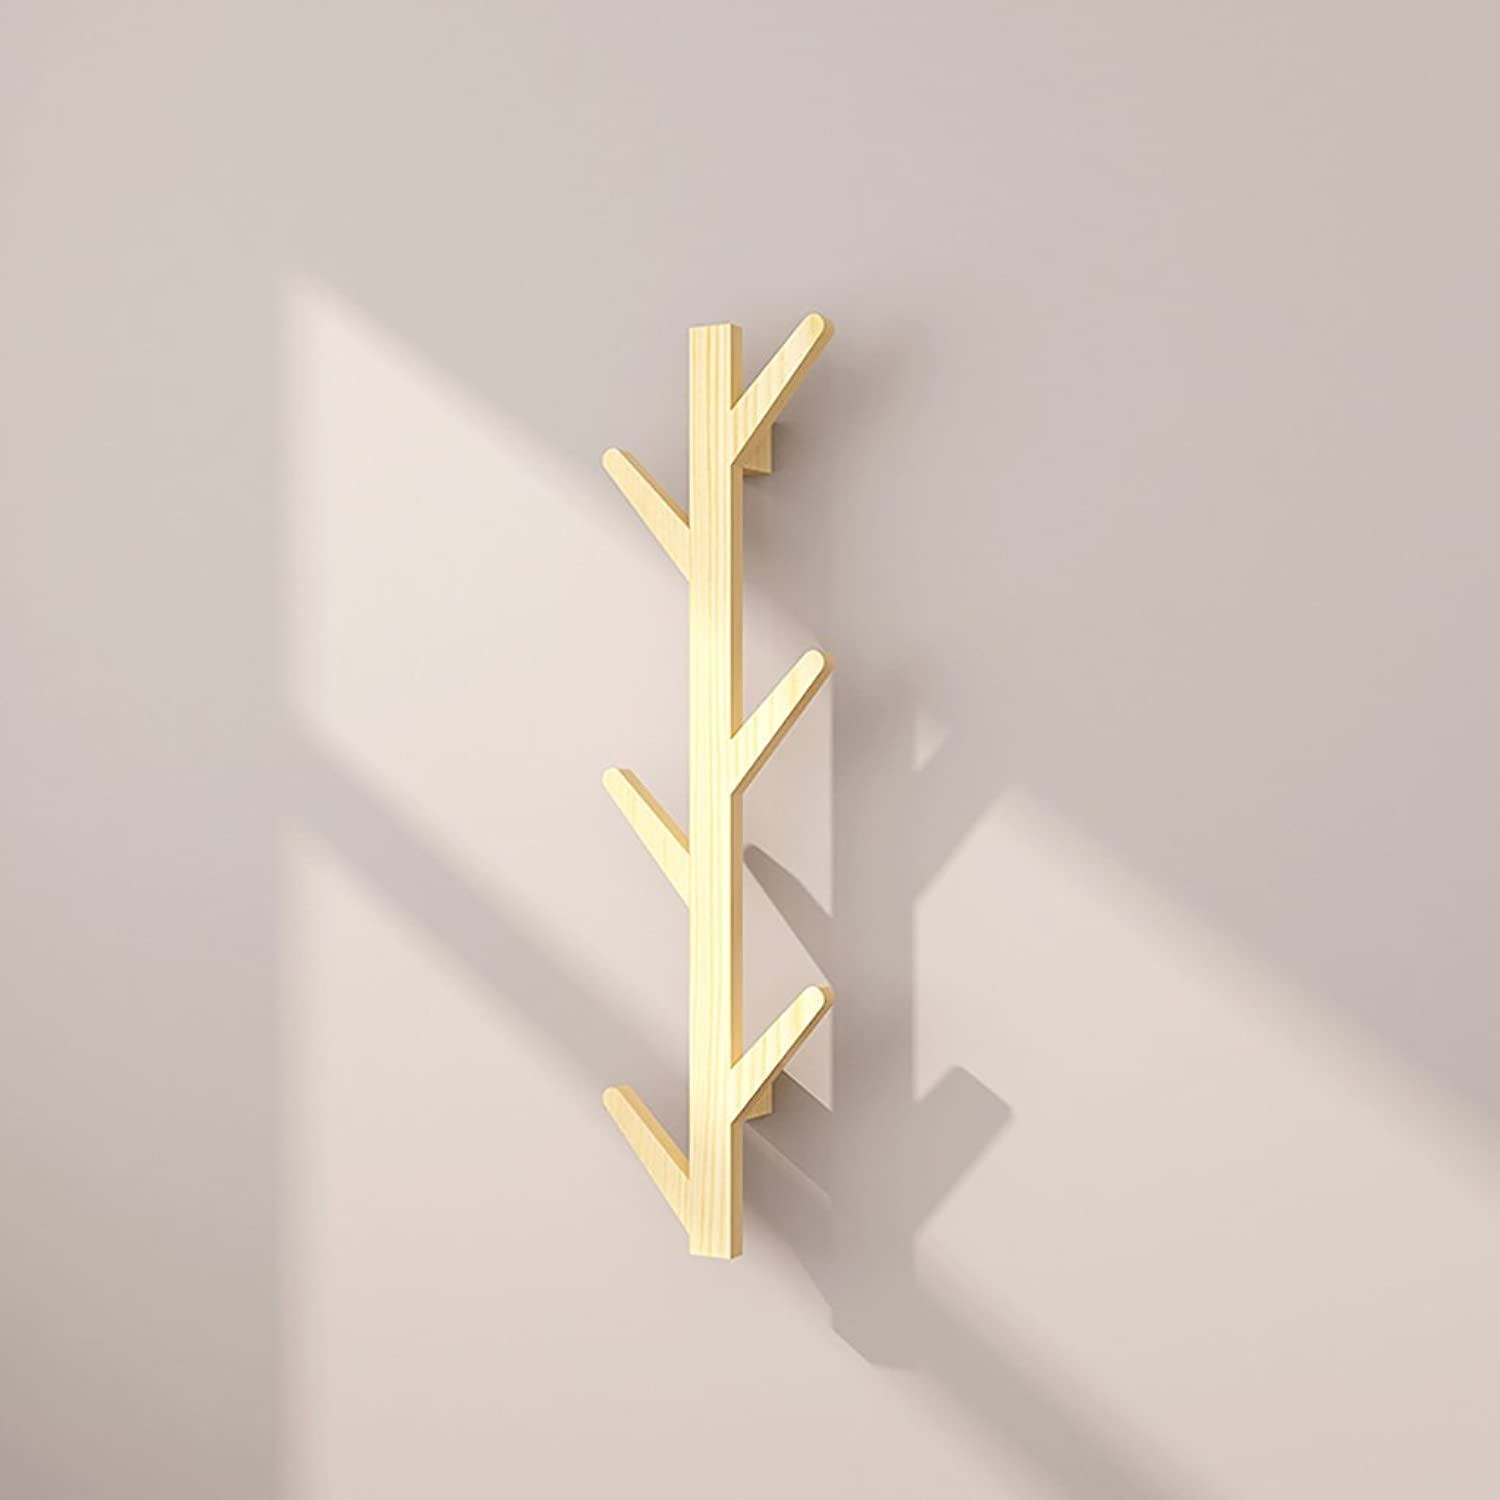 Wall-Mounted Coat Racks, Wall-Hung Coat Hooks, Bedroom Living Room Entrance Creativitysimple Modern Solid Wood Wall-Mounted Coat Racks.